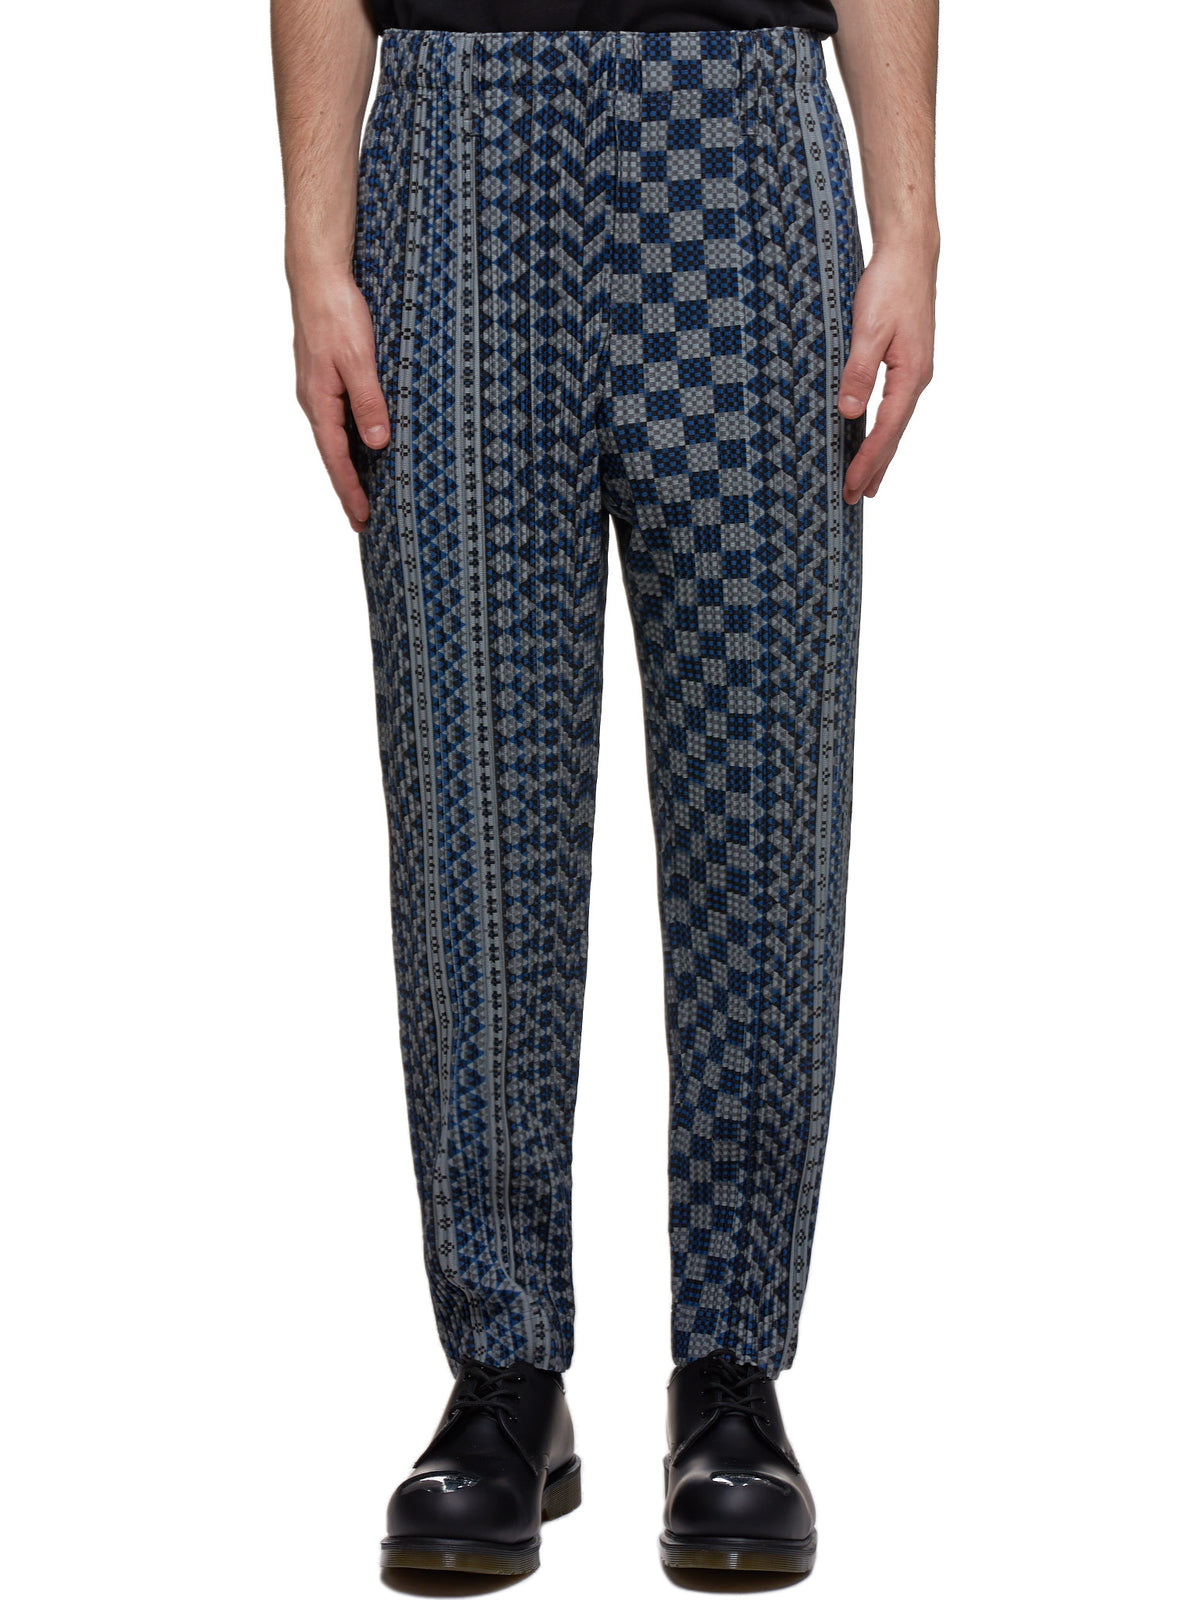 Pleated Trousers (HP06JF252-77-GRAY-BLUE)